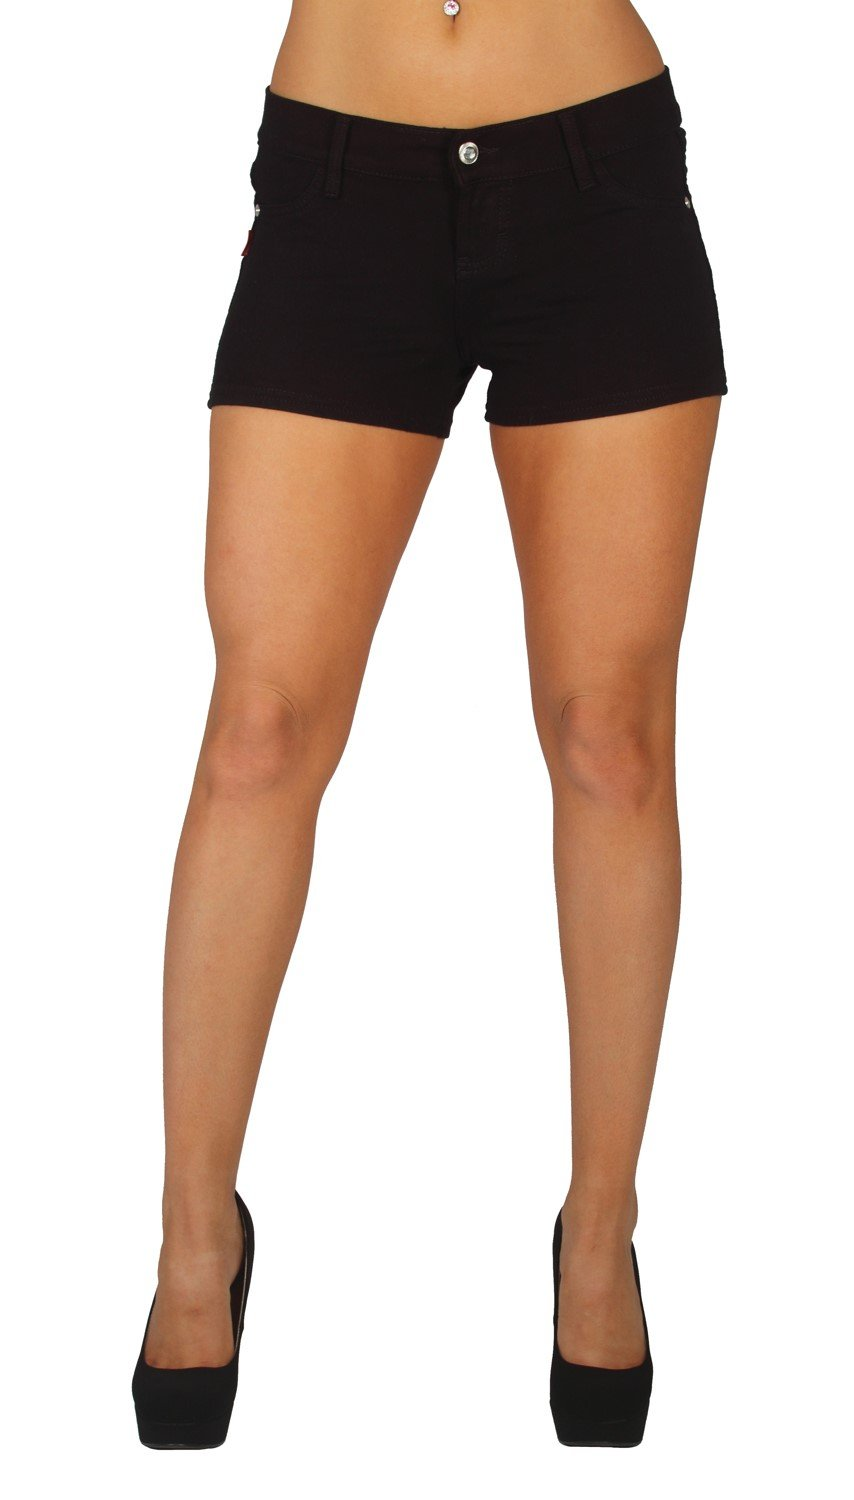 Basic Booty Shorts Premium Stretch French Terry Moleton With a gentle butt lifting stitching in Black Size XXL